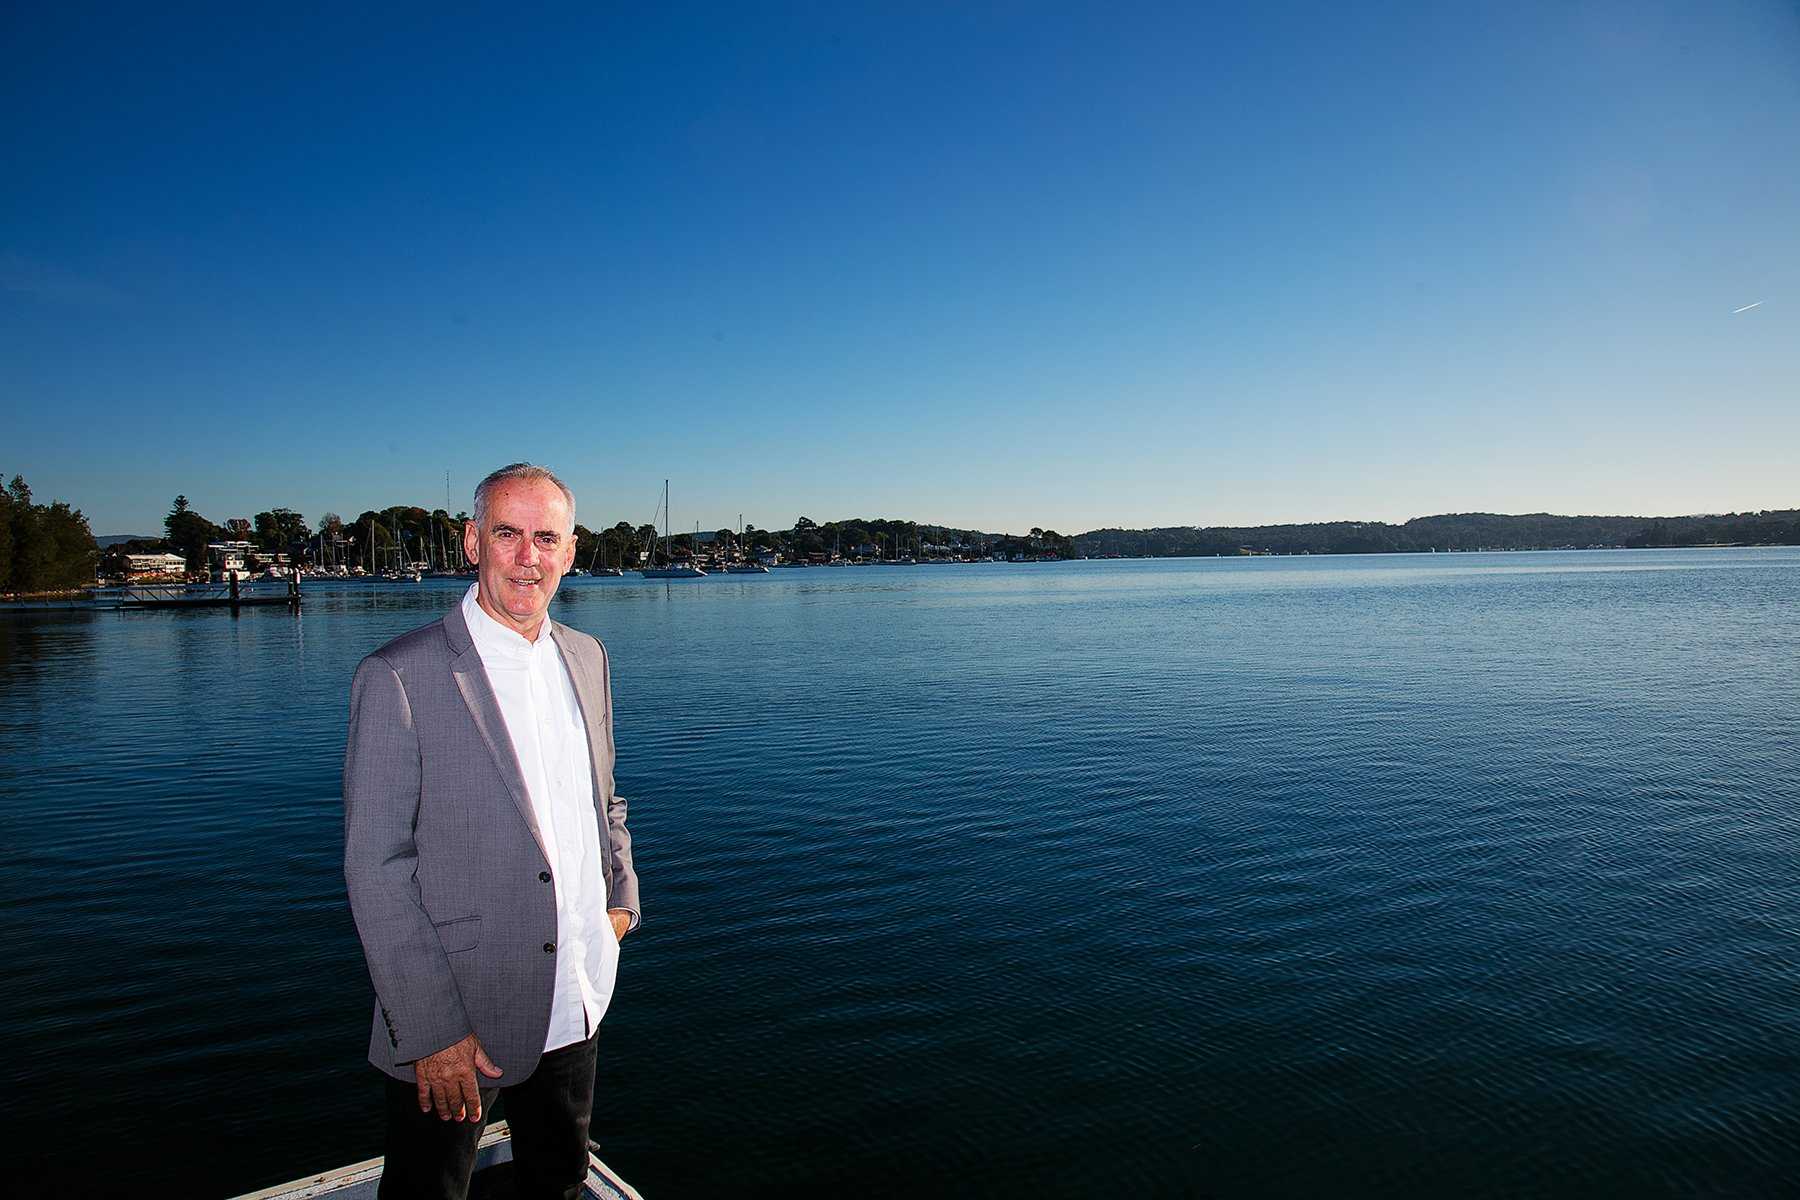 Member for Lake Macquarie Greg Piper has welcomed $180,000 worth of State funding to better monitor the condition of local beaches and the lake. The announcement follows a successful funding application from Lake Macquarie City Council which will fund the remaining half of the project cost.